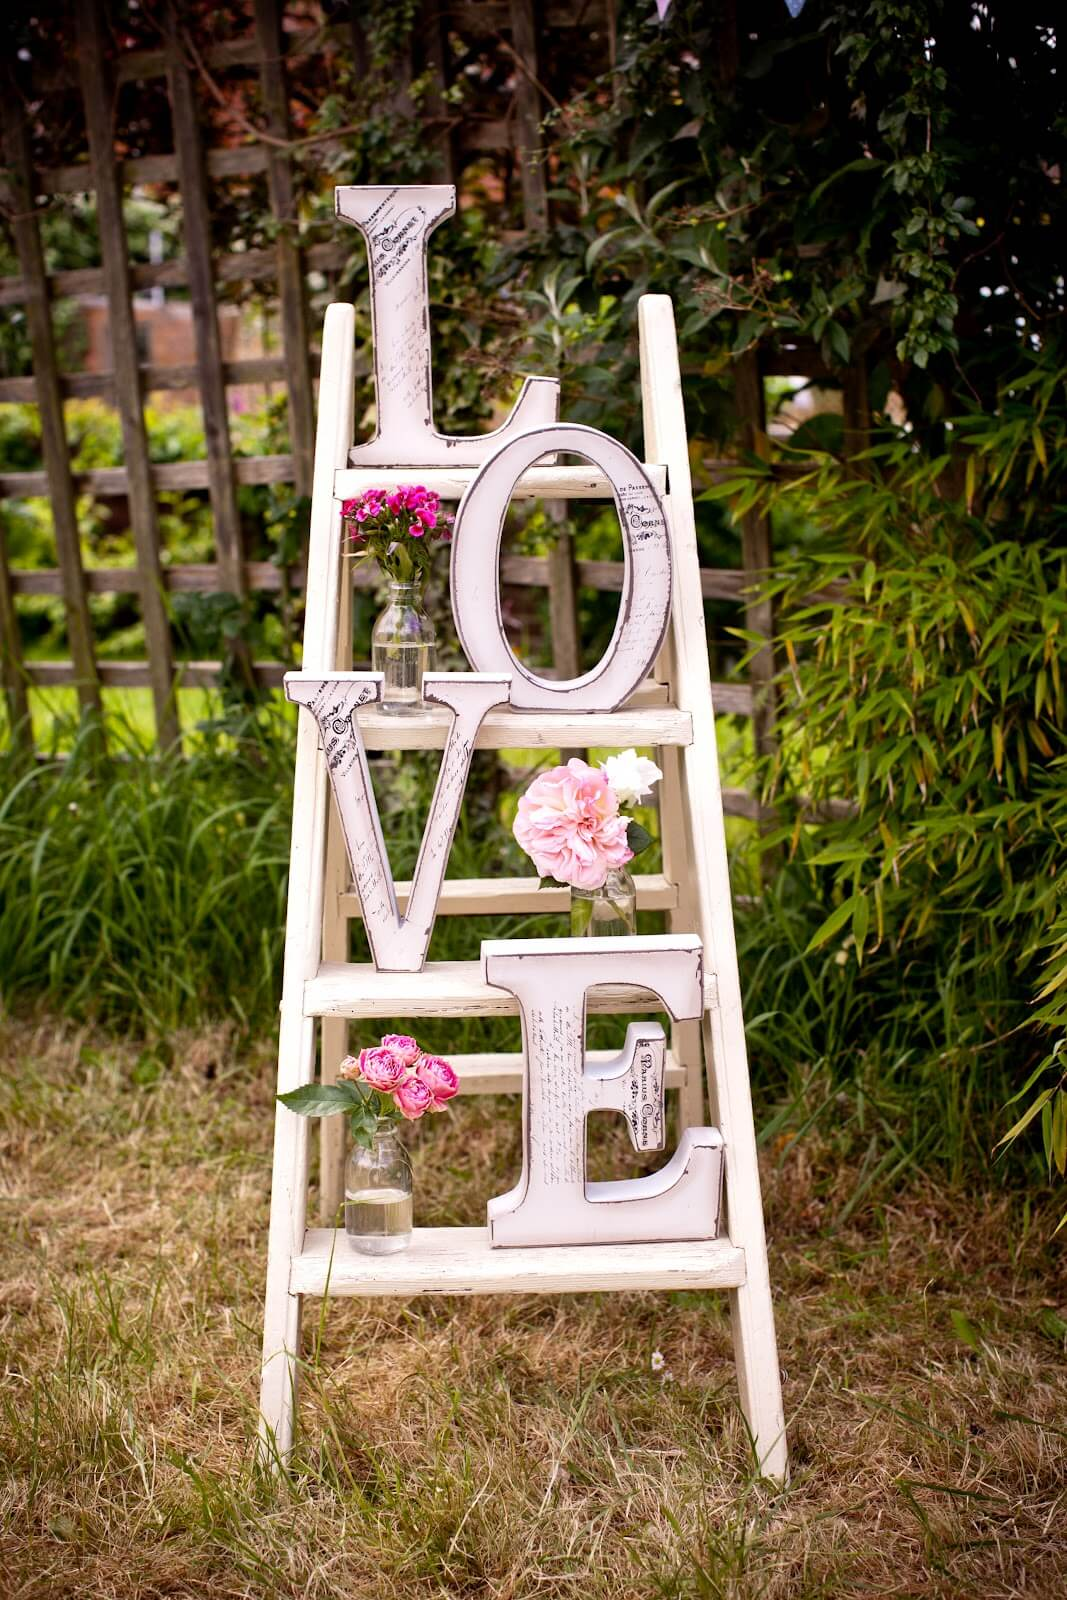 Vintage Garden Decor Ideas: Love Ladder and Vase Garden Display